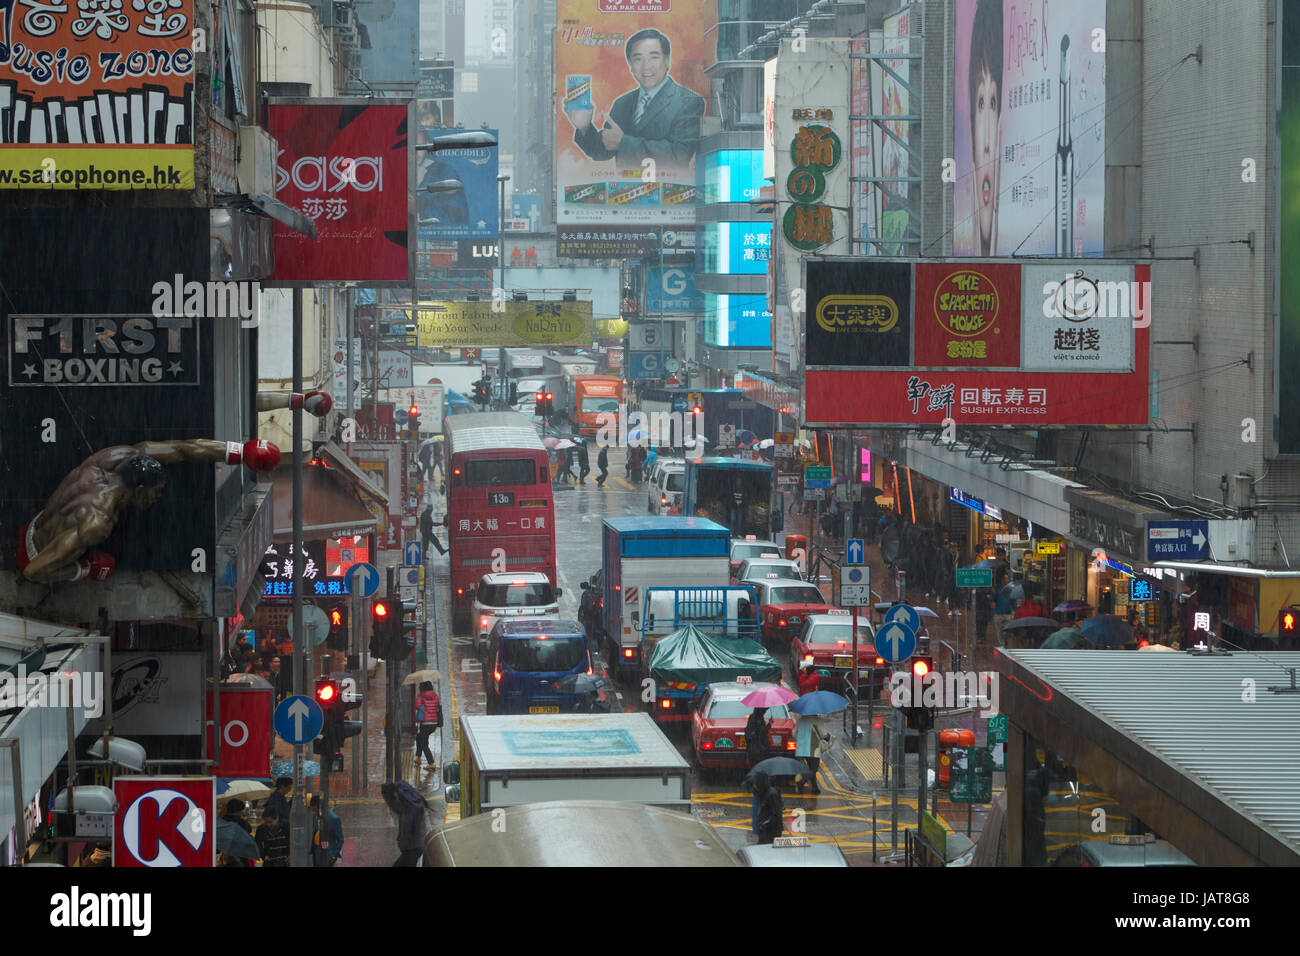 Rain, signs and traffic congestion on Sai Yeung Choi Street, Mong Kok, Kowloon, Hong Kong, China - Stock Image